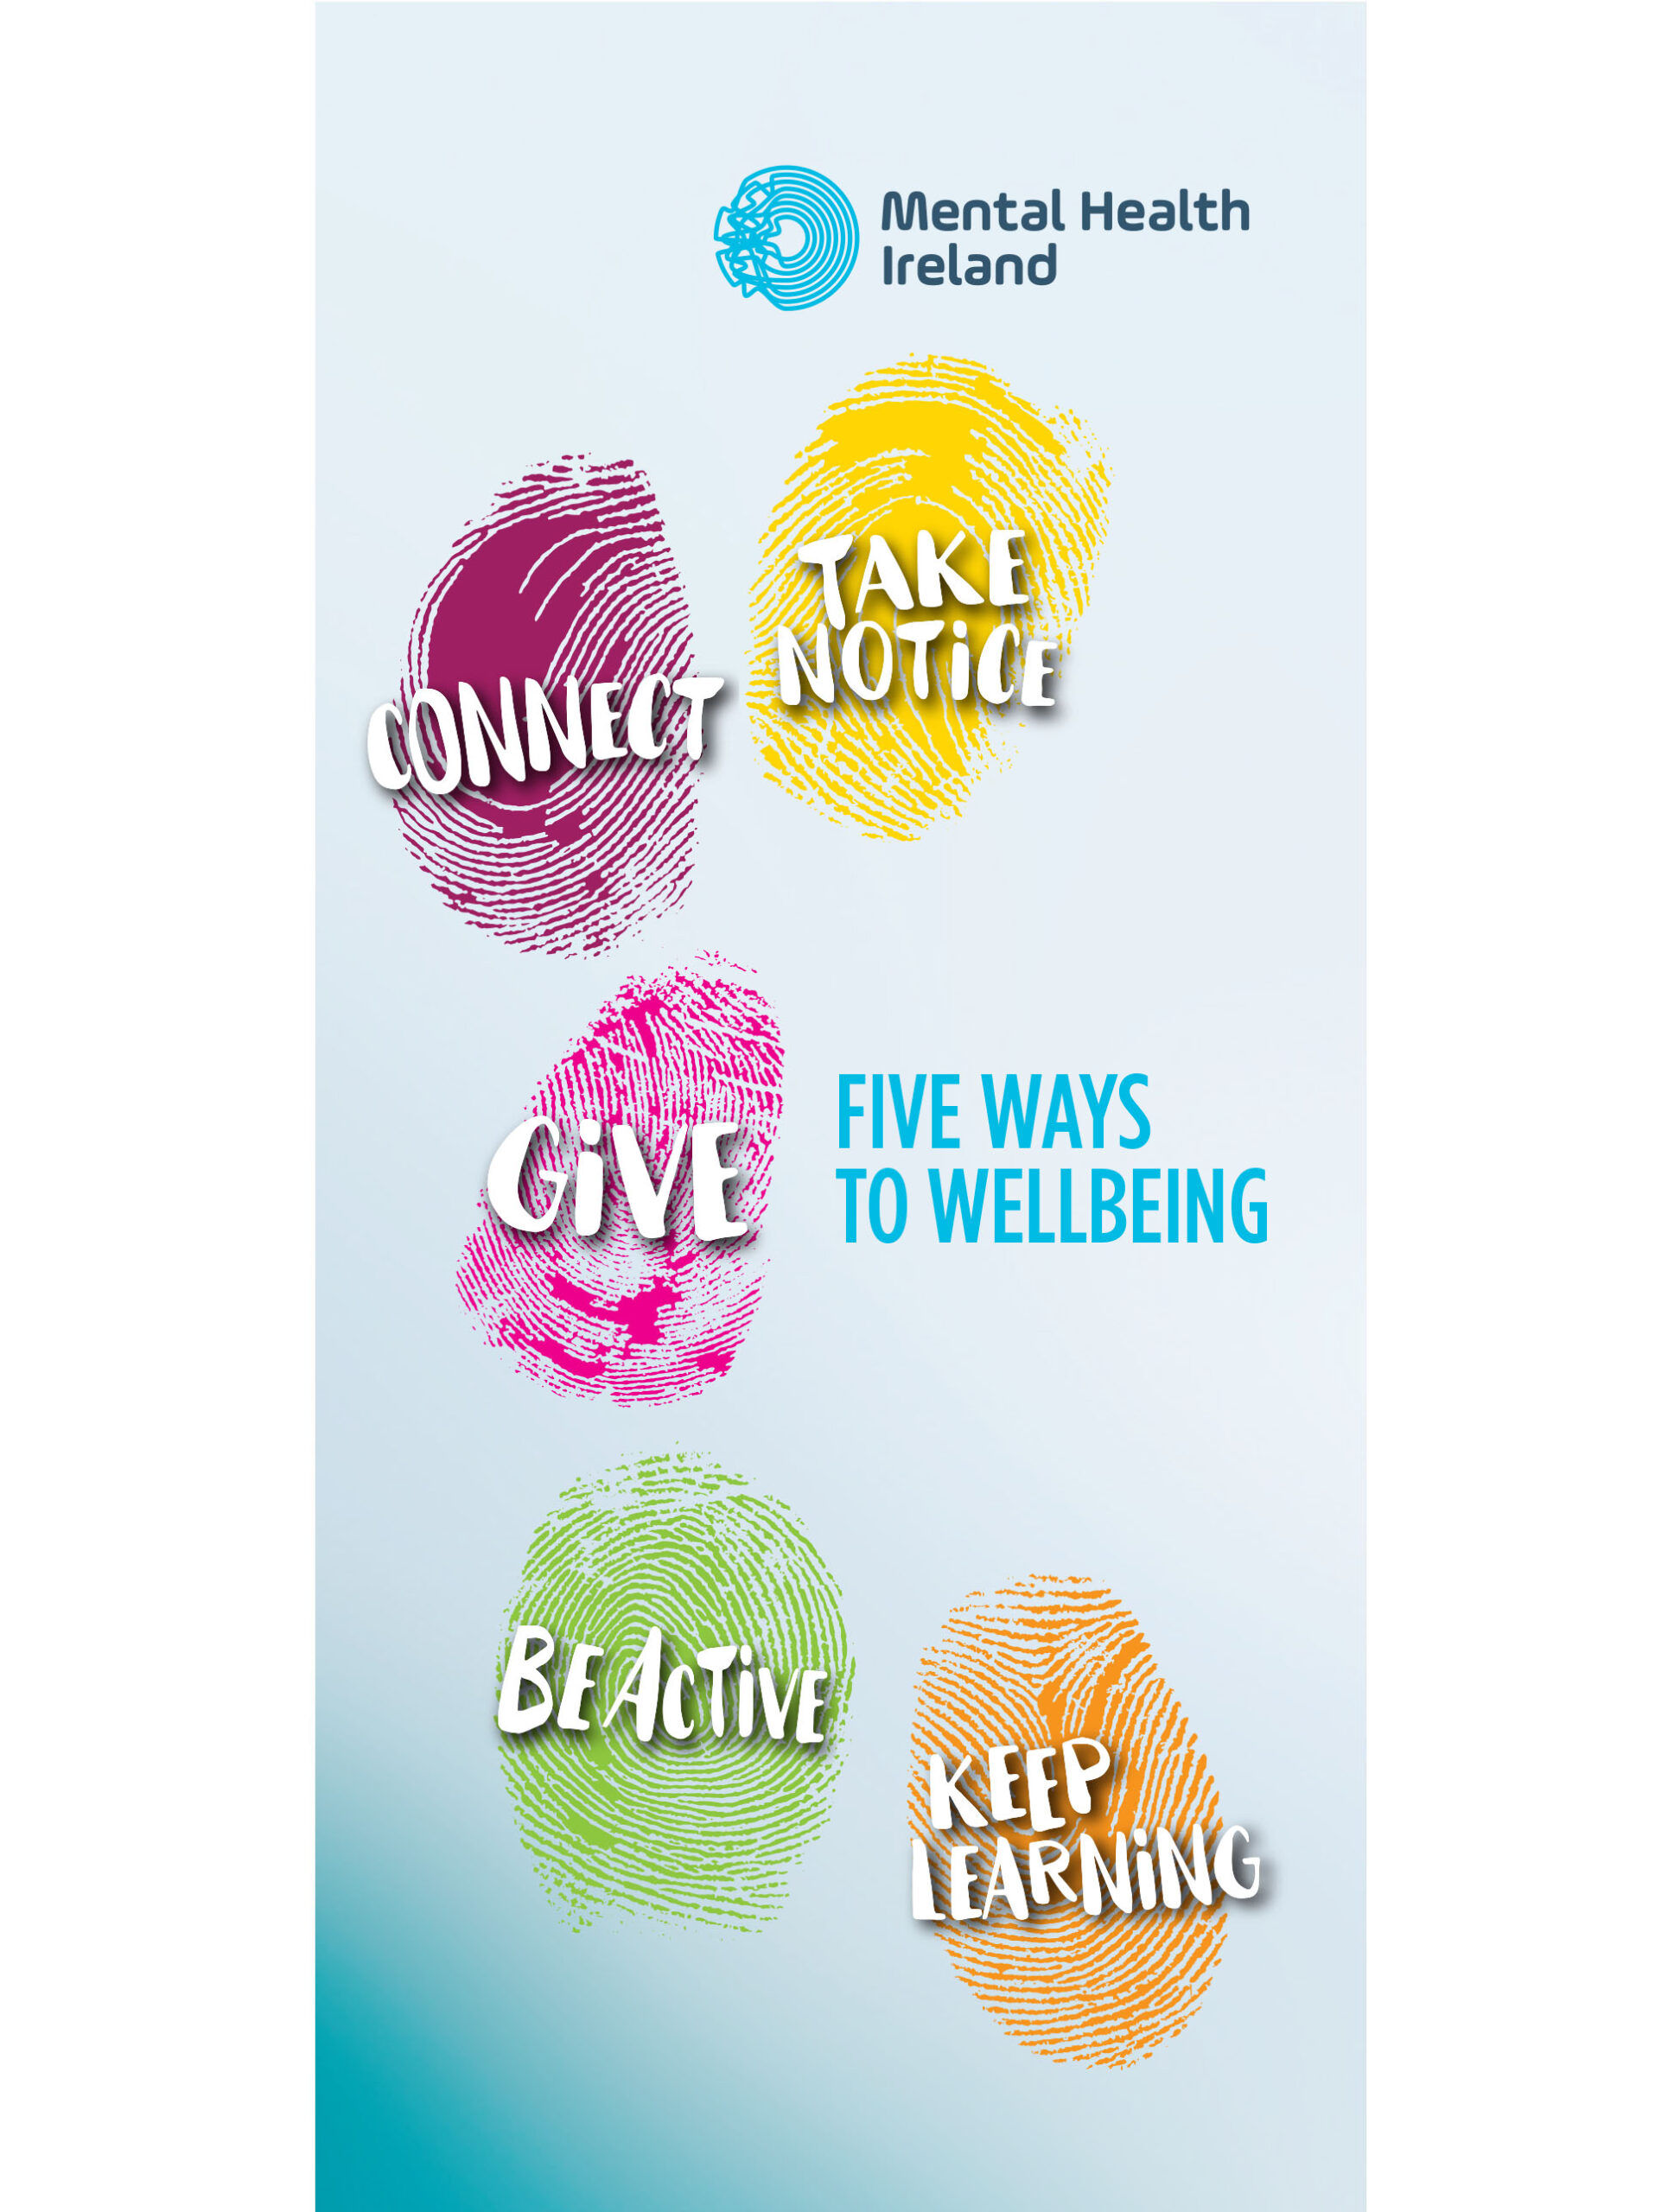 The Five Ways to Wellbeing Leaflet